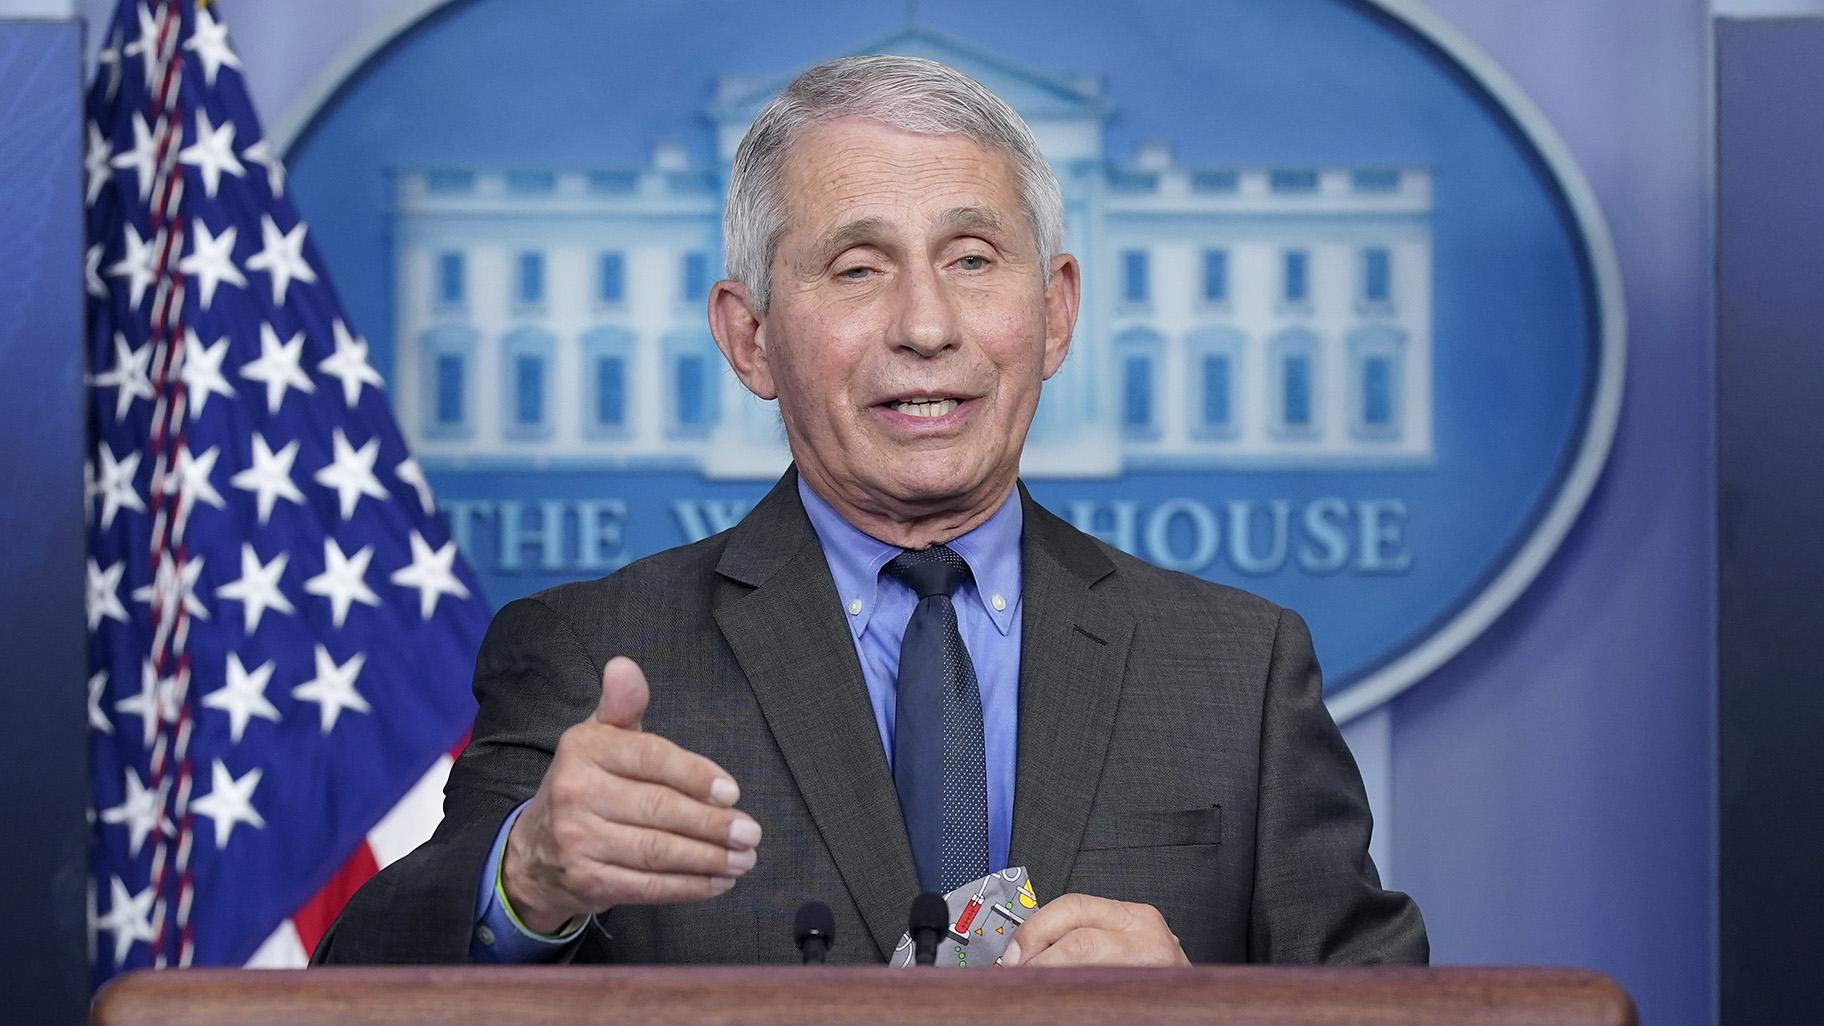 Dr. Anthony Fauci, director of the National Institute of Allergy and Infectious Diseases, speaks during a press briefing at the White House, Tuesday, April 13, 2021, in Washington. (AP Photo / Patrick Semansky)